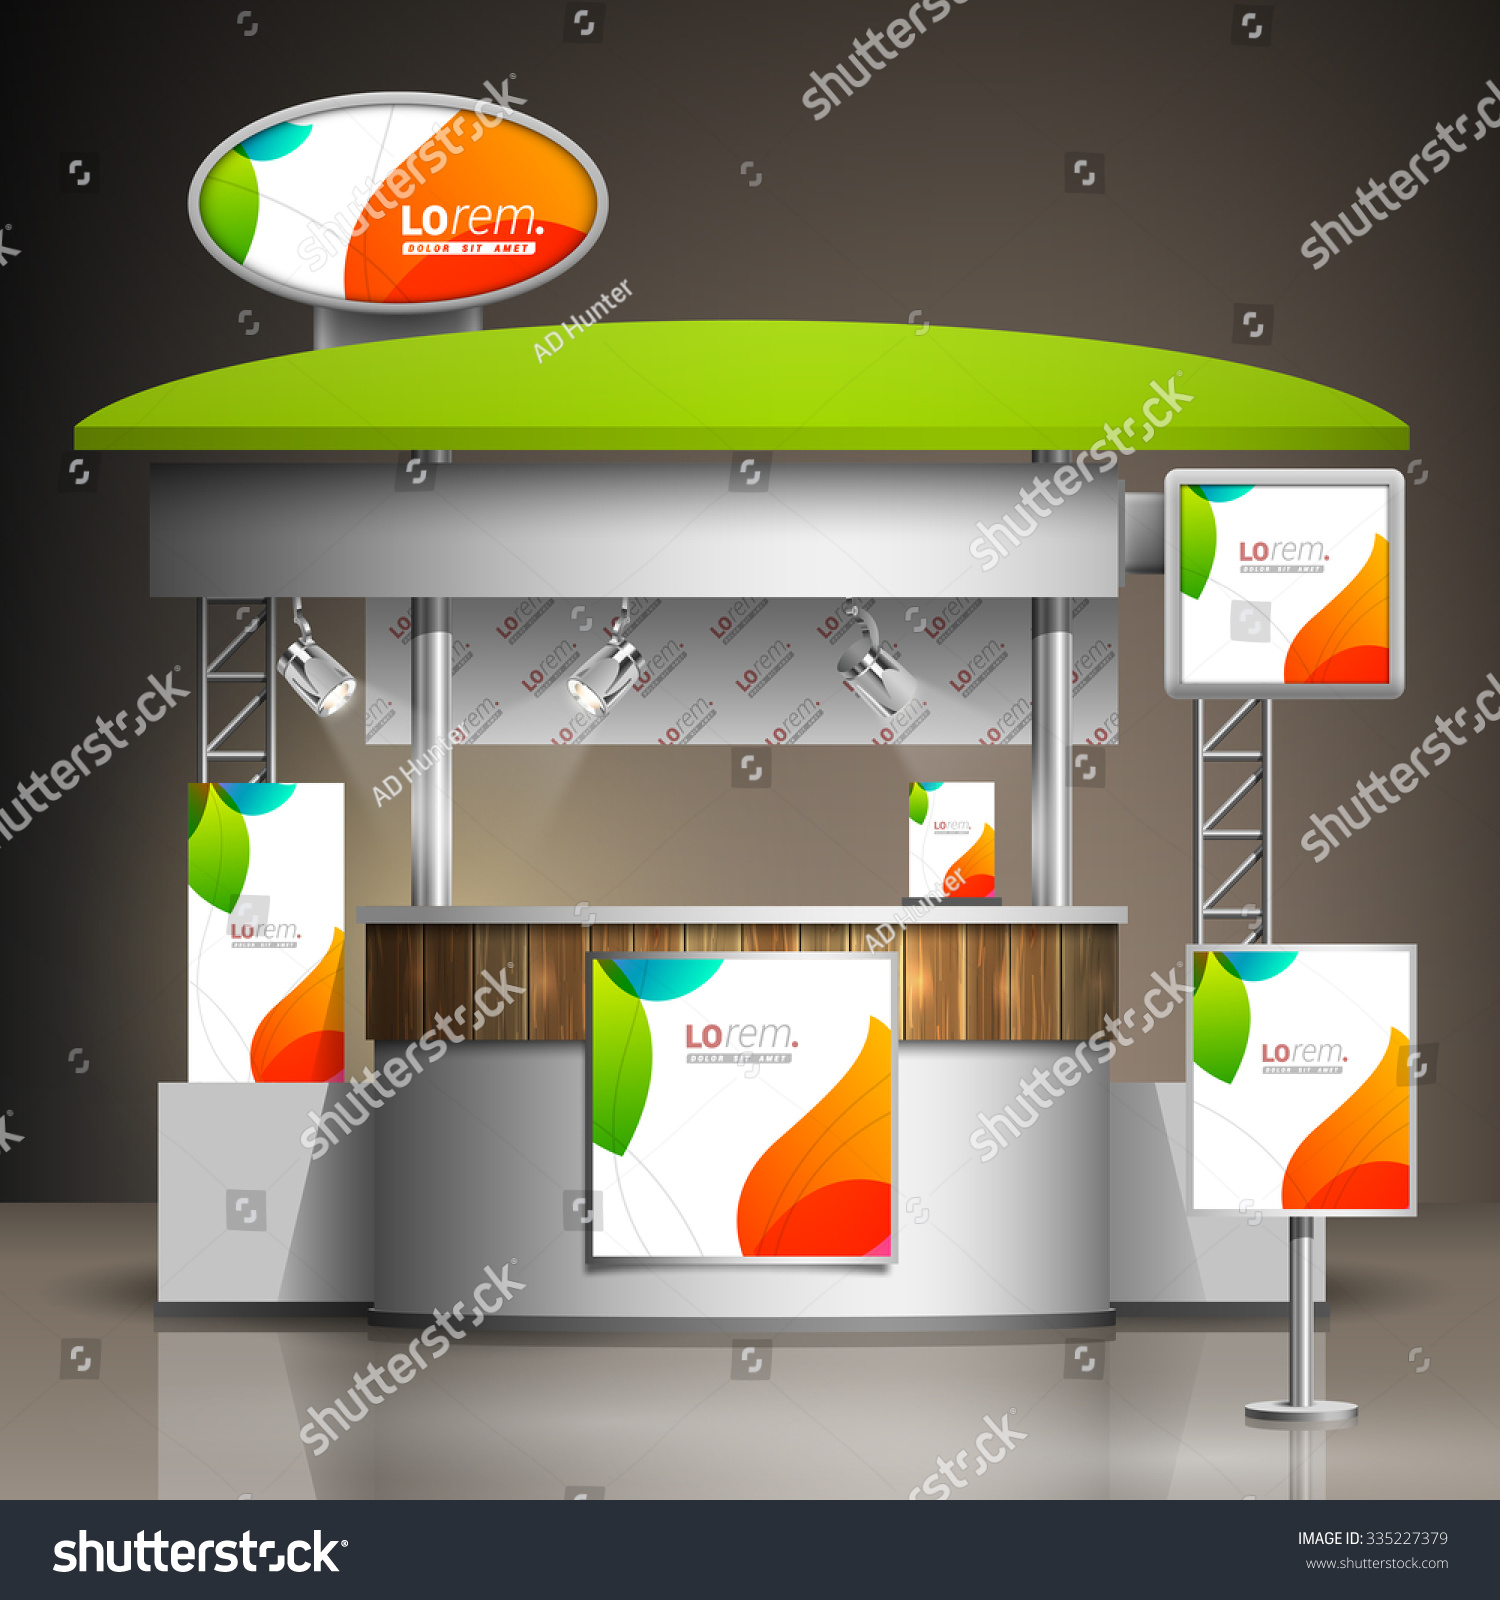 Exhibition Stand Design Template : White creative exhibition stand design color stock vector